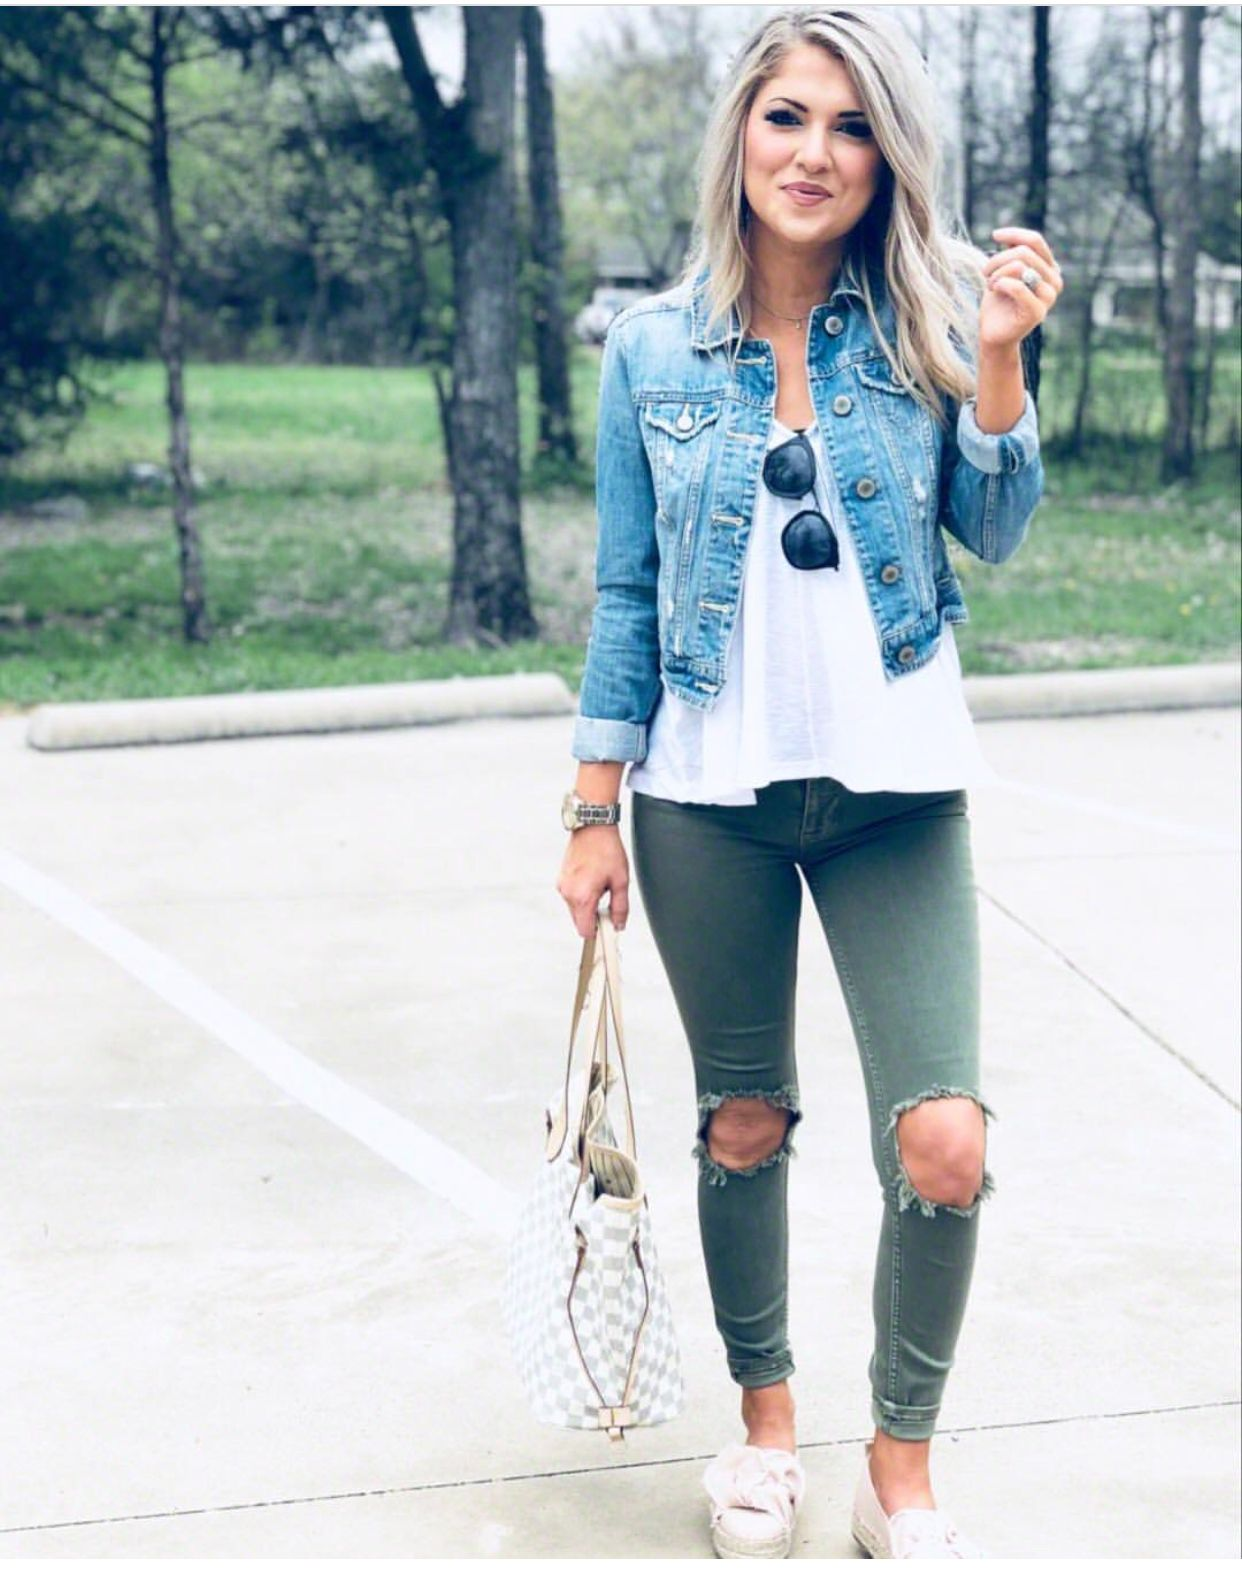 Ripped Green Jeans With A White Tee And A Jean Jacket Cute Ripped Jeans Outfit Fashion Cute Ripped Jeans [ 1570 x 1242 Pixel ]